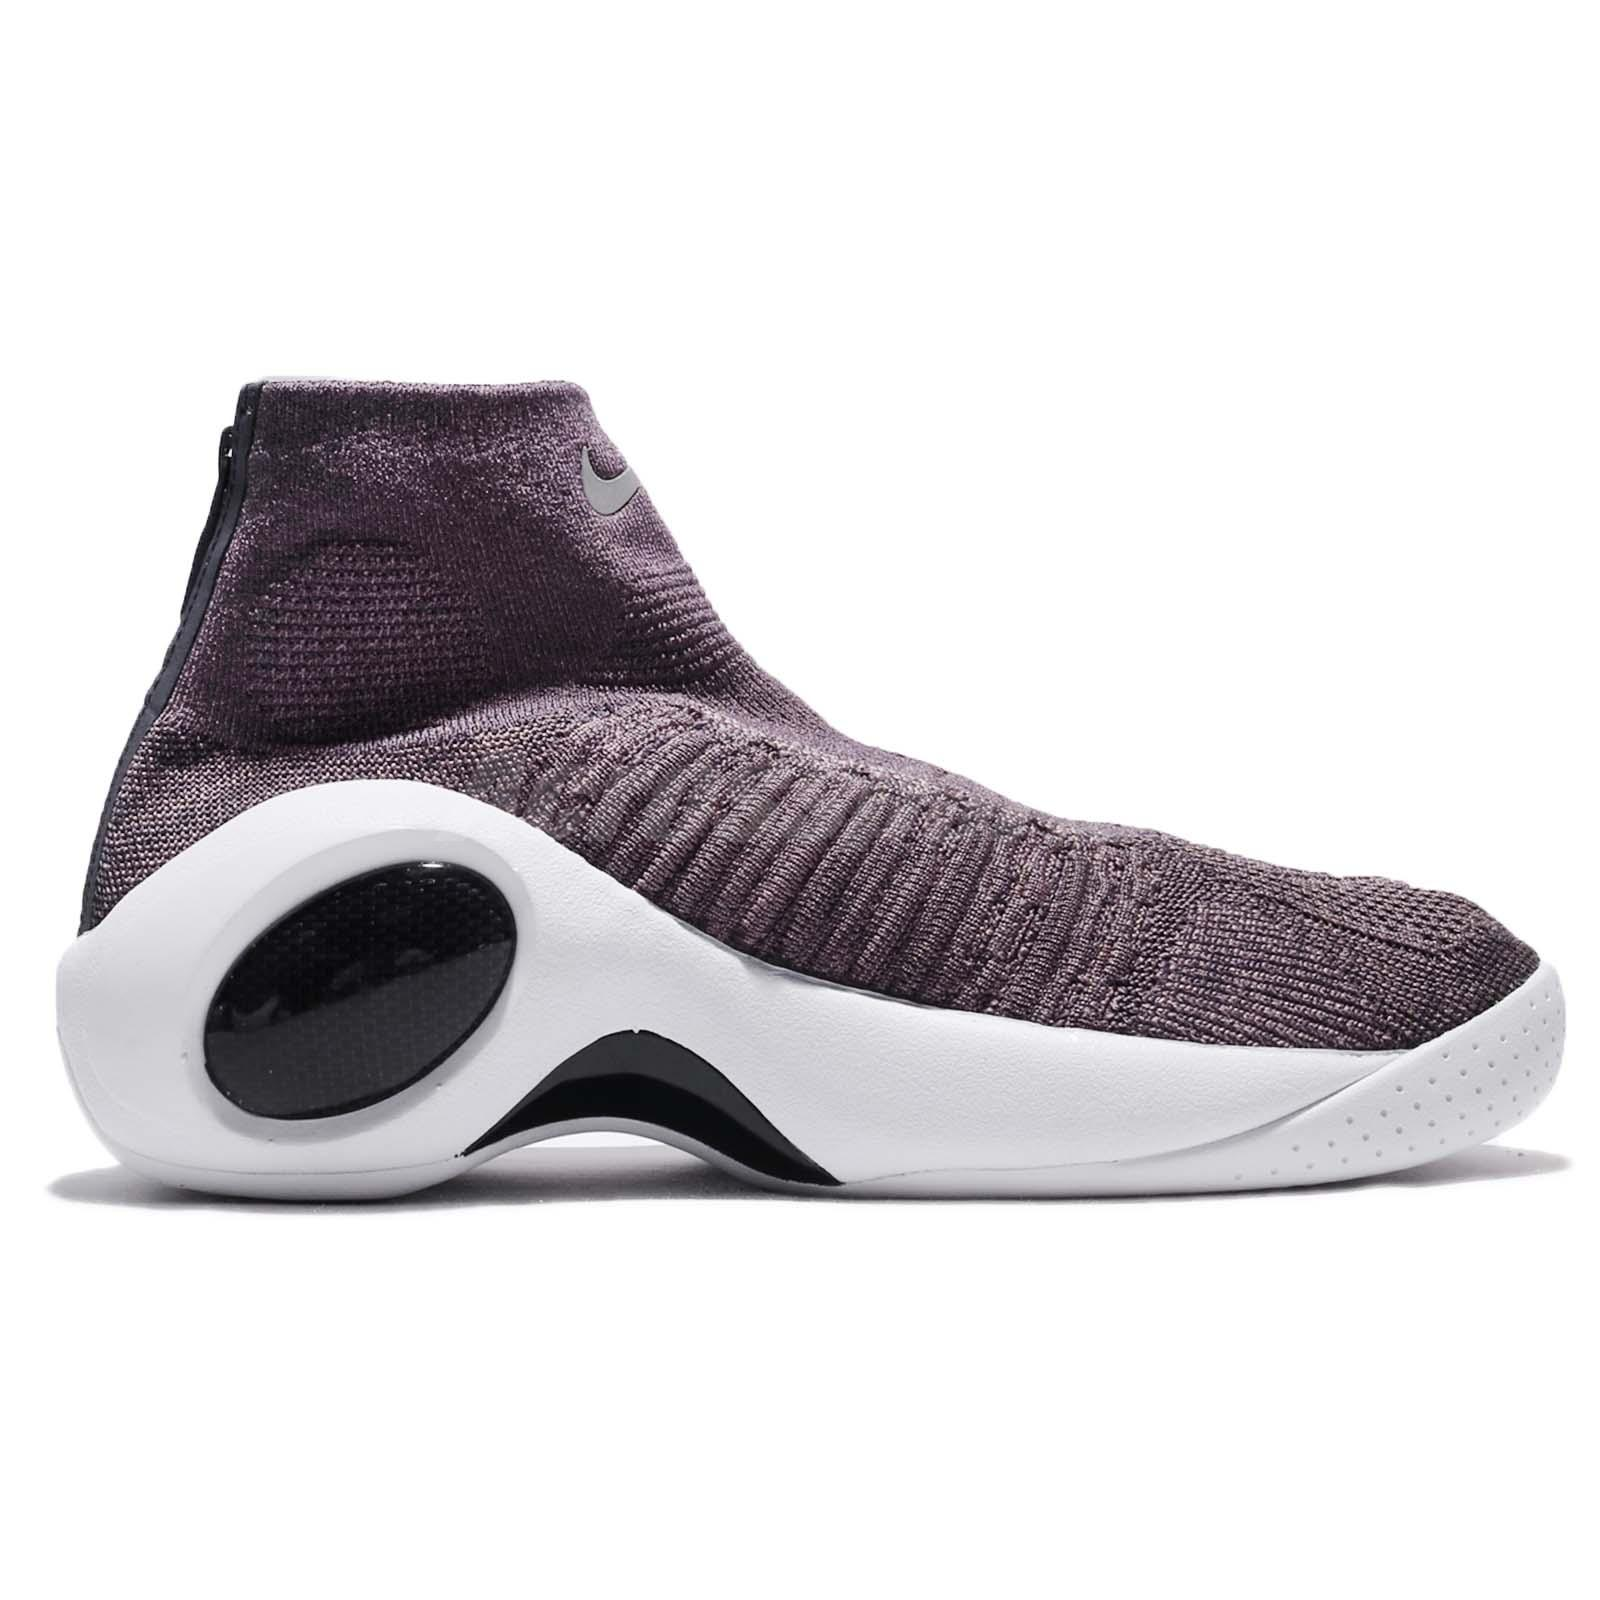 8013c2baa3f1ef Nike Flight Bonafide Plum Taupe Grey Dark Raisin Men Shoes Jason ...